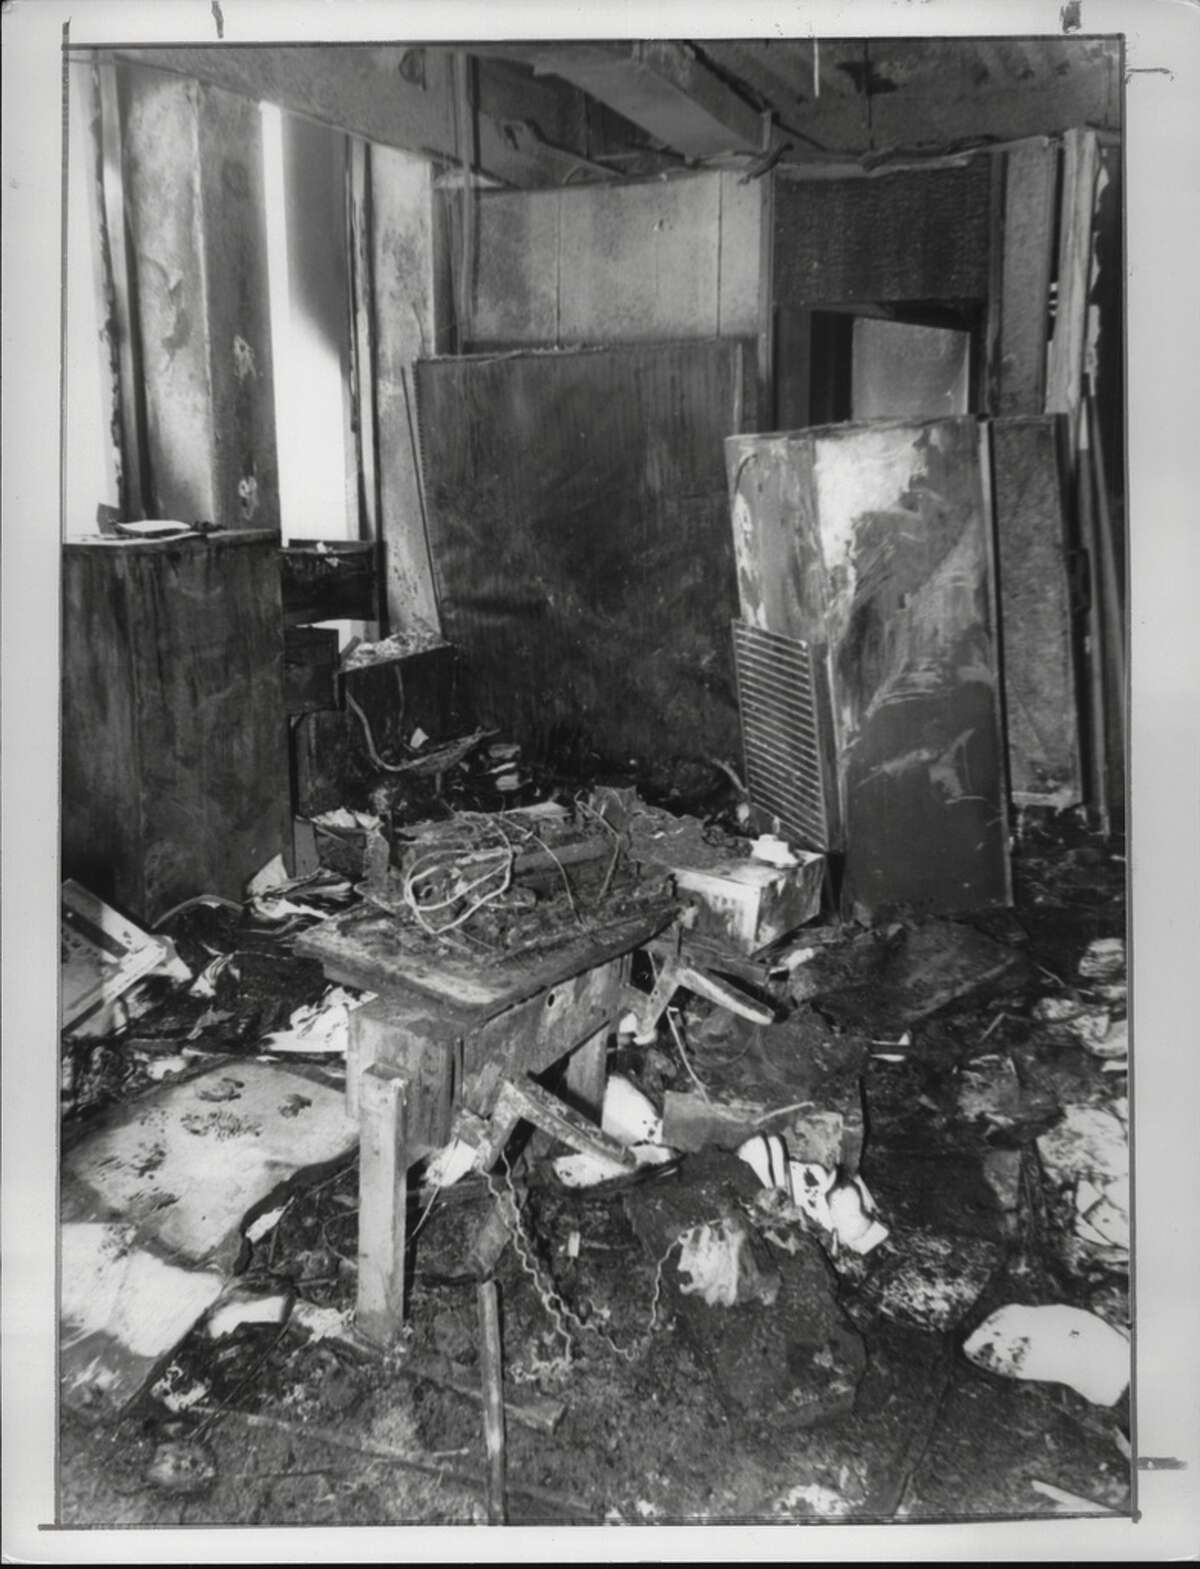 Fire damage at South Mall Agency Building, Albany, New York. March 04, 1986 (Jack Madigan/Times Union Archive)